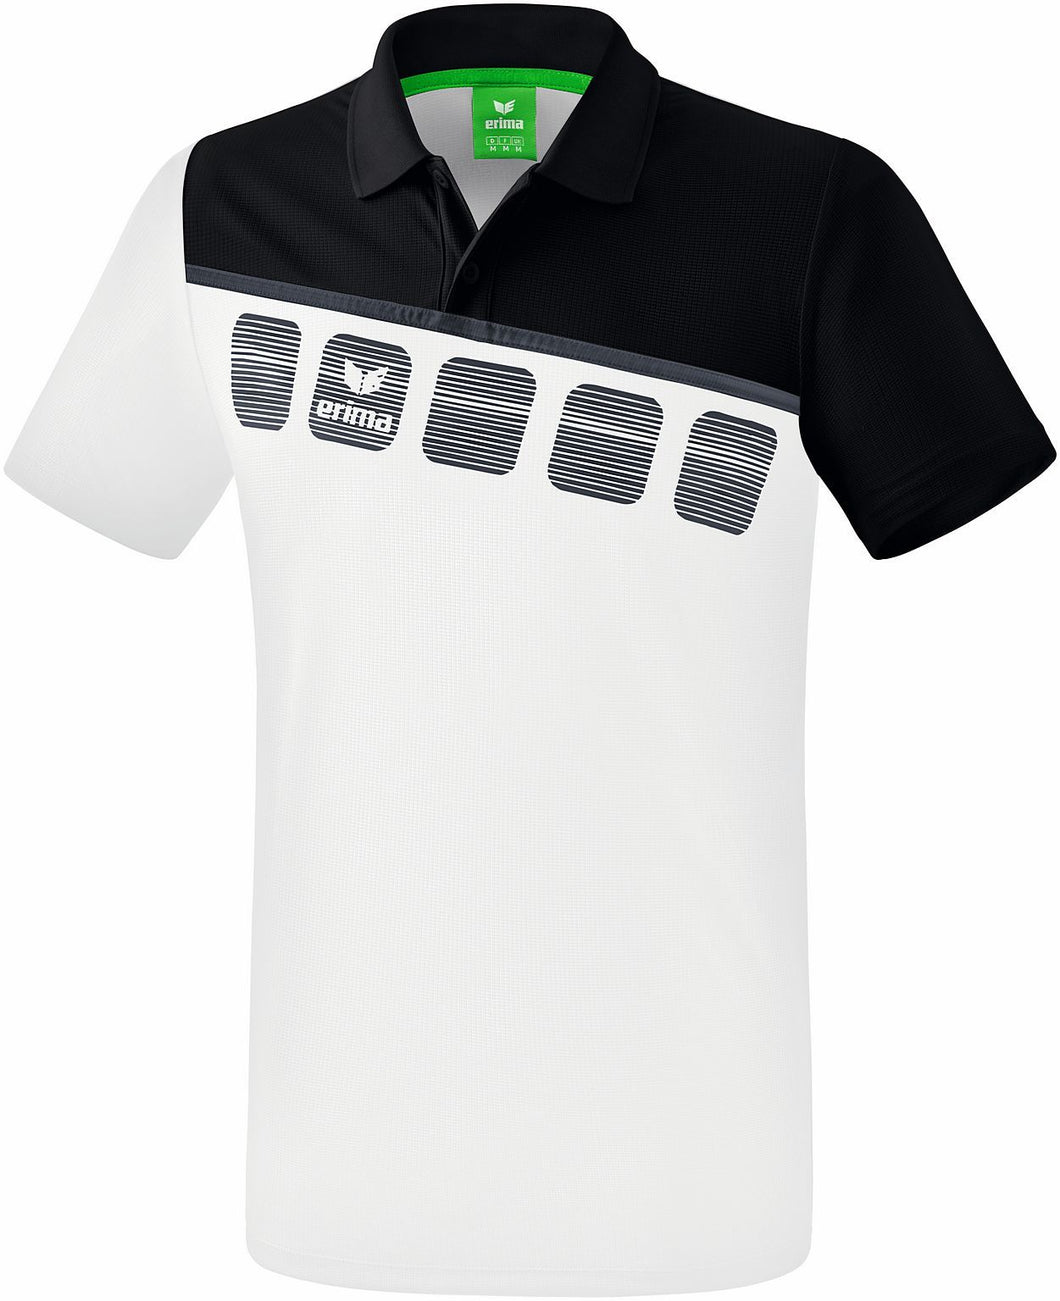 Teamline 5-C polo-shirt